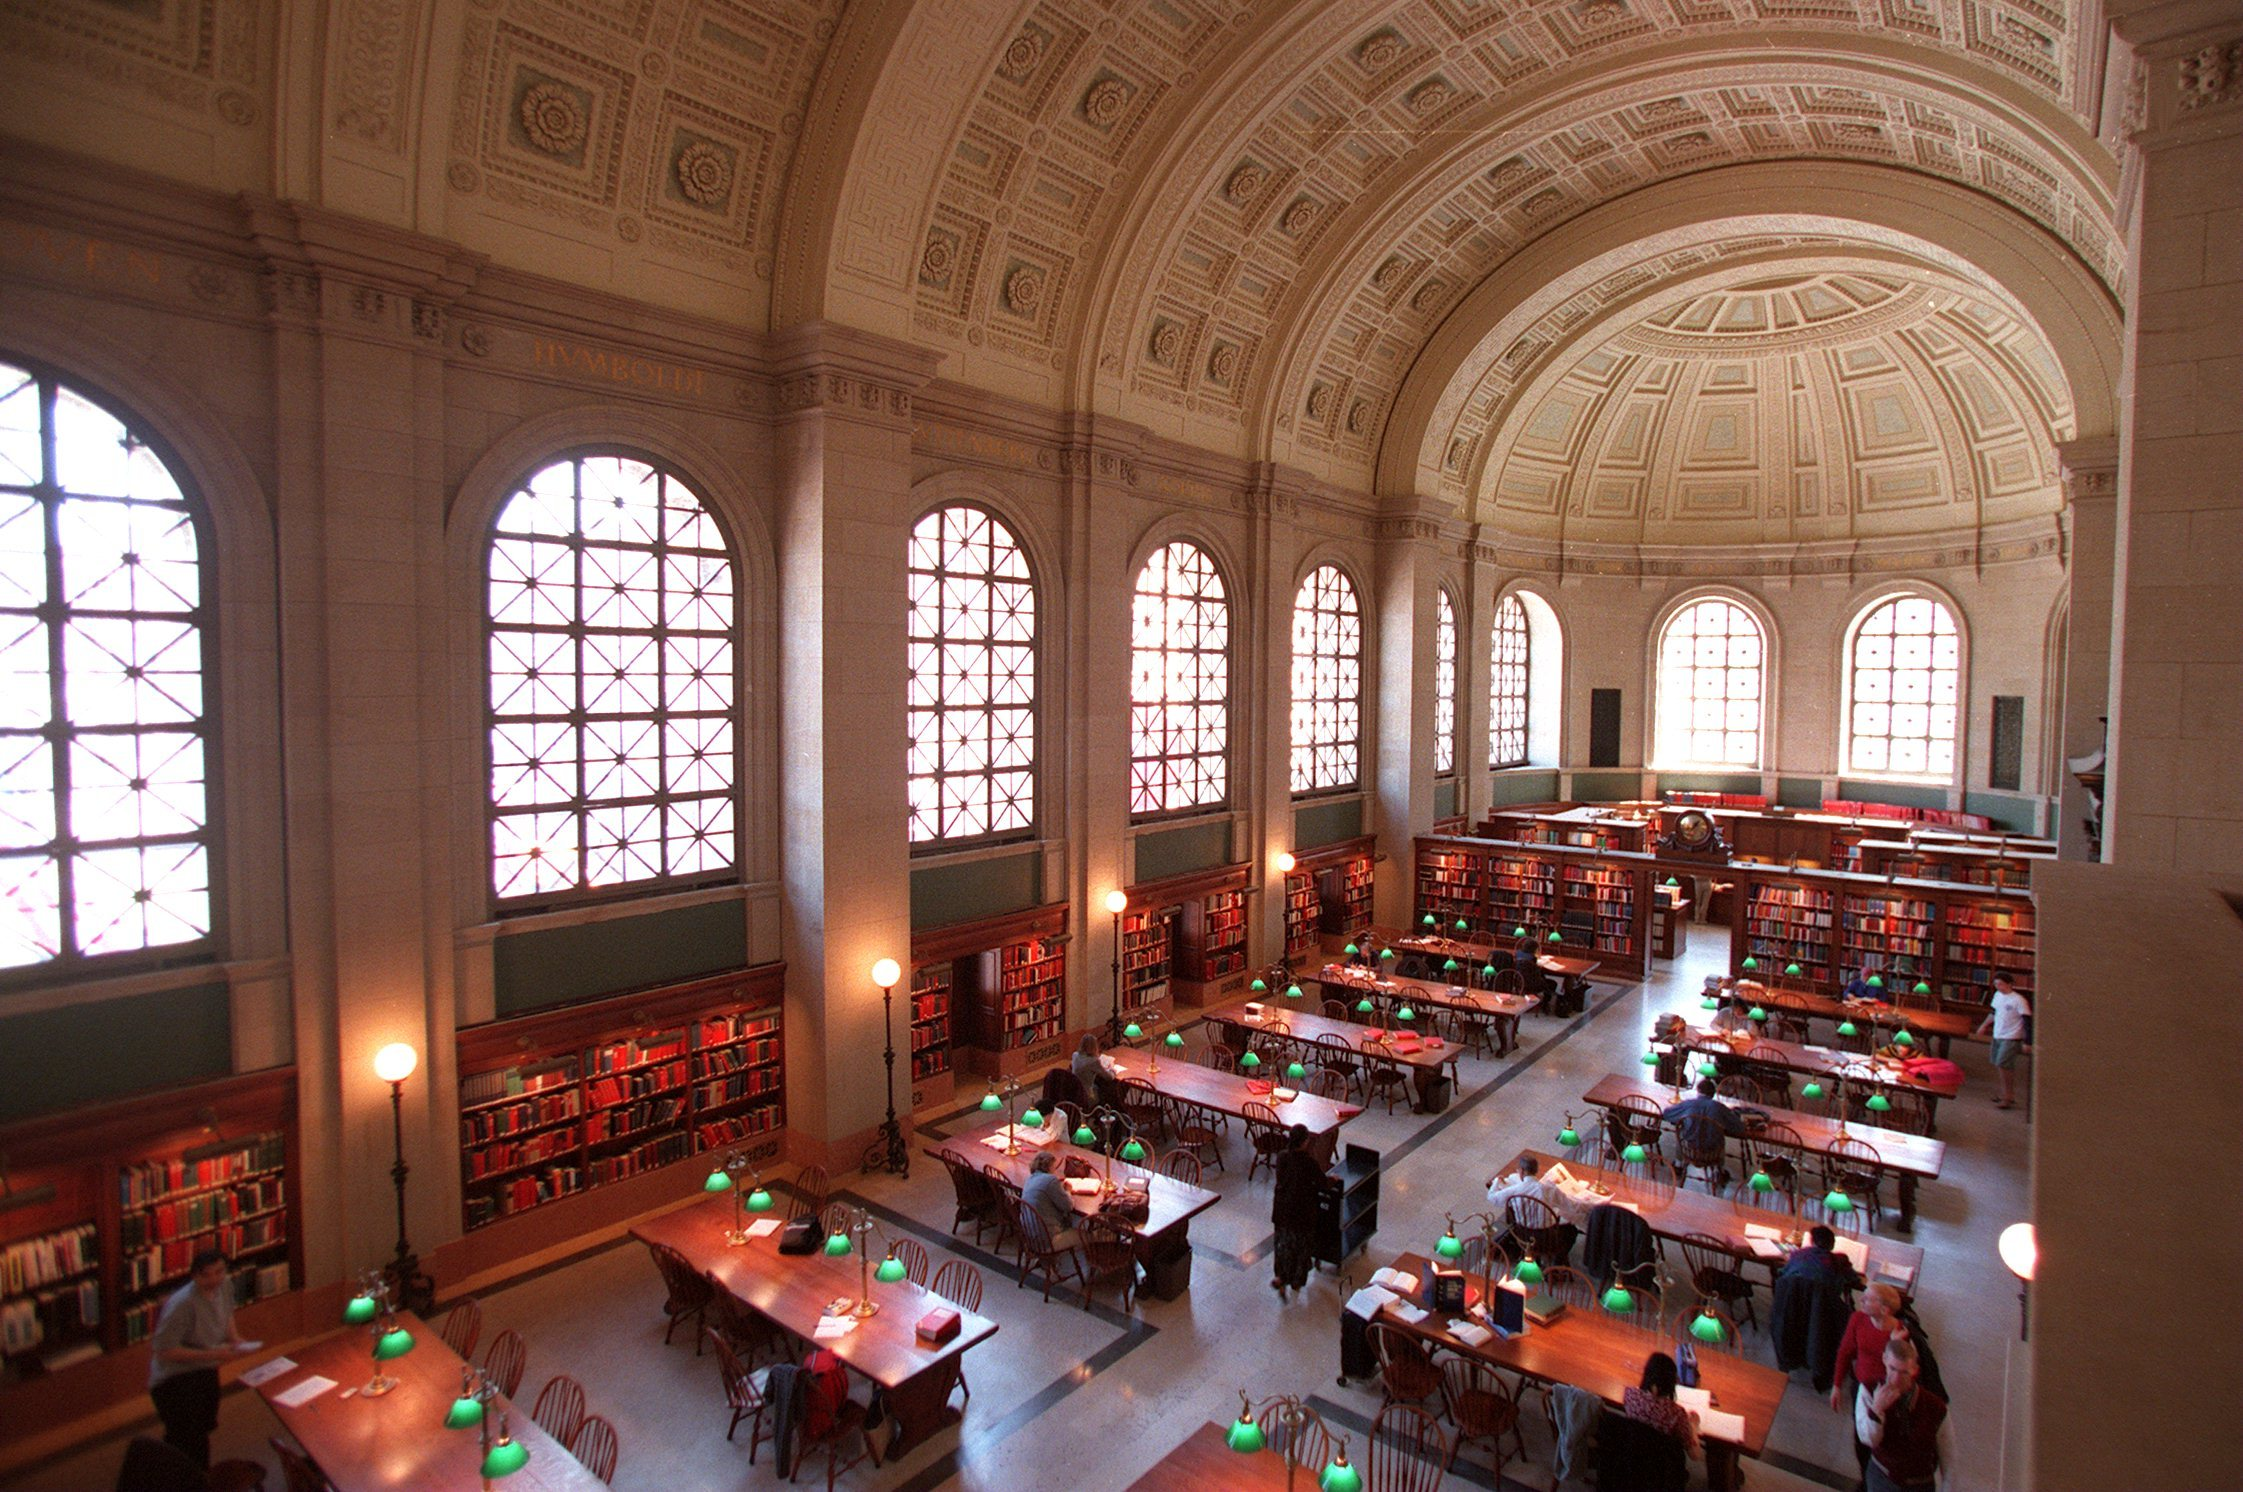 These were the 10 most-borrowed books at the Boston Public Library in 2018